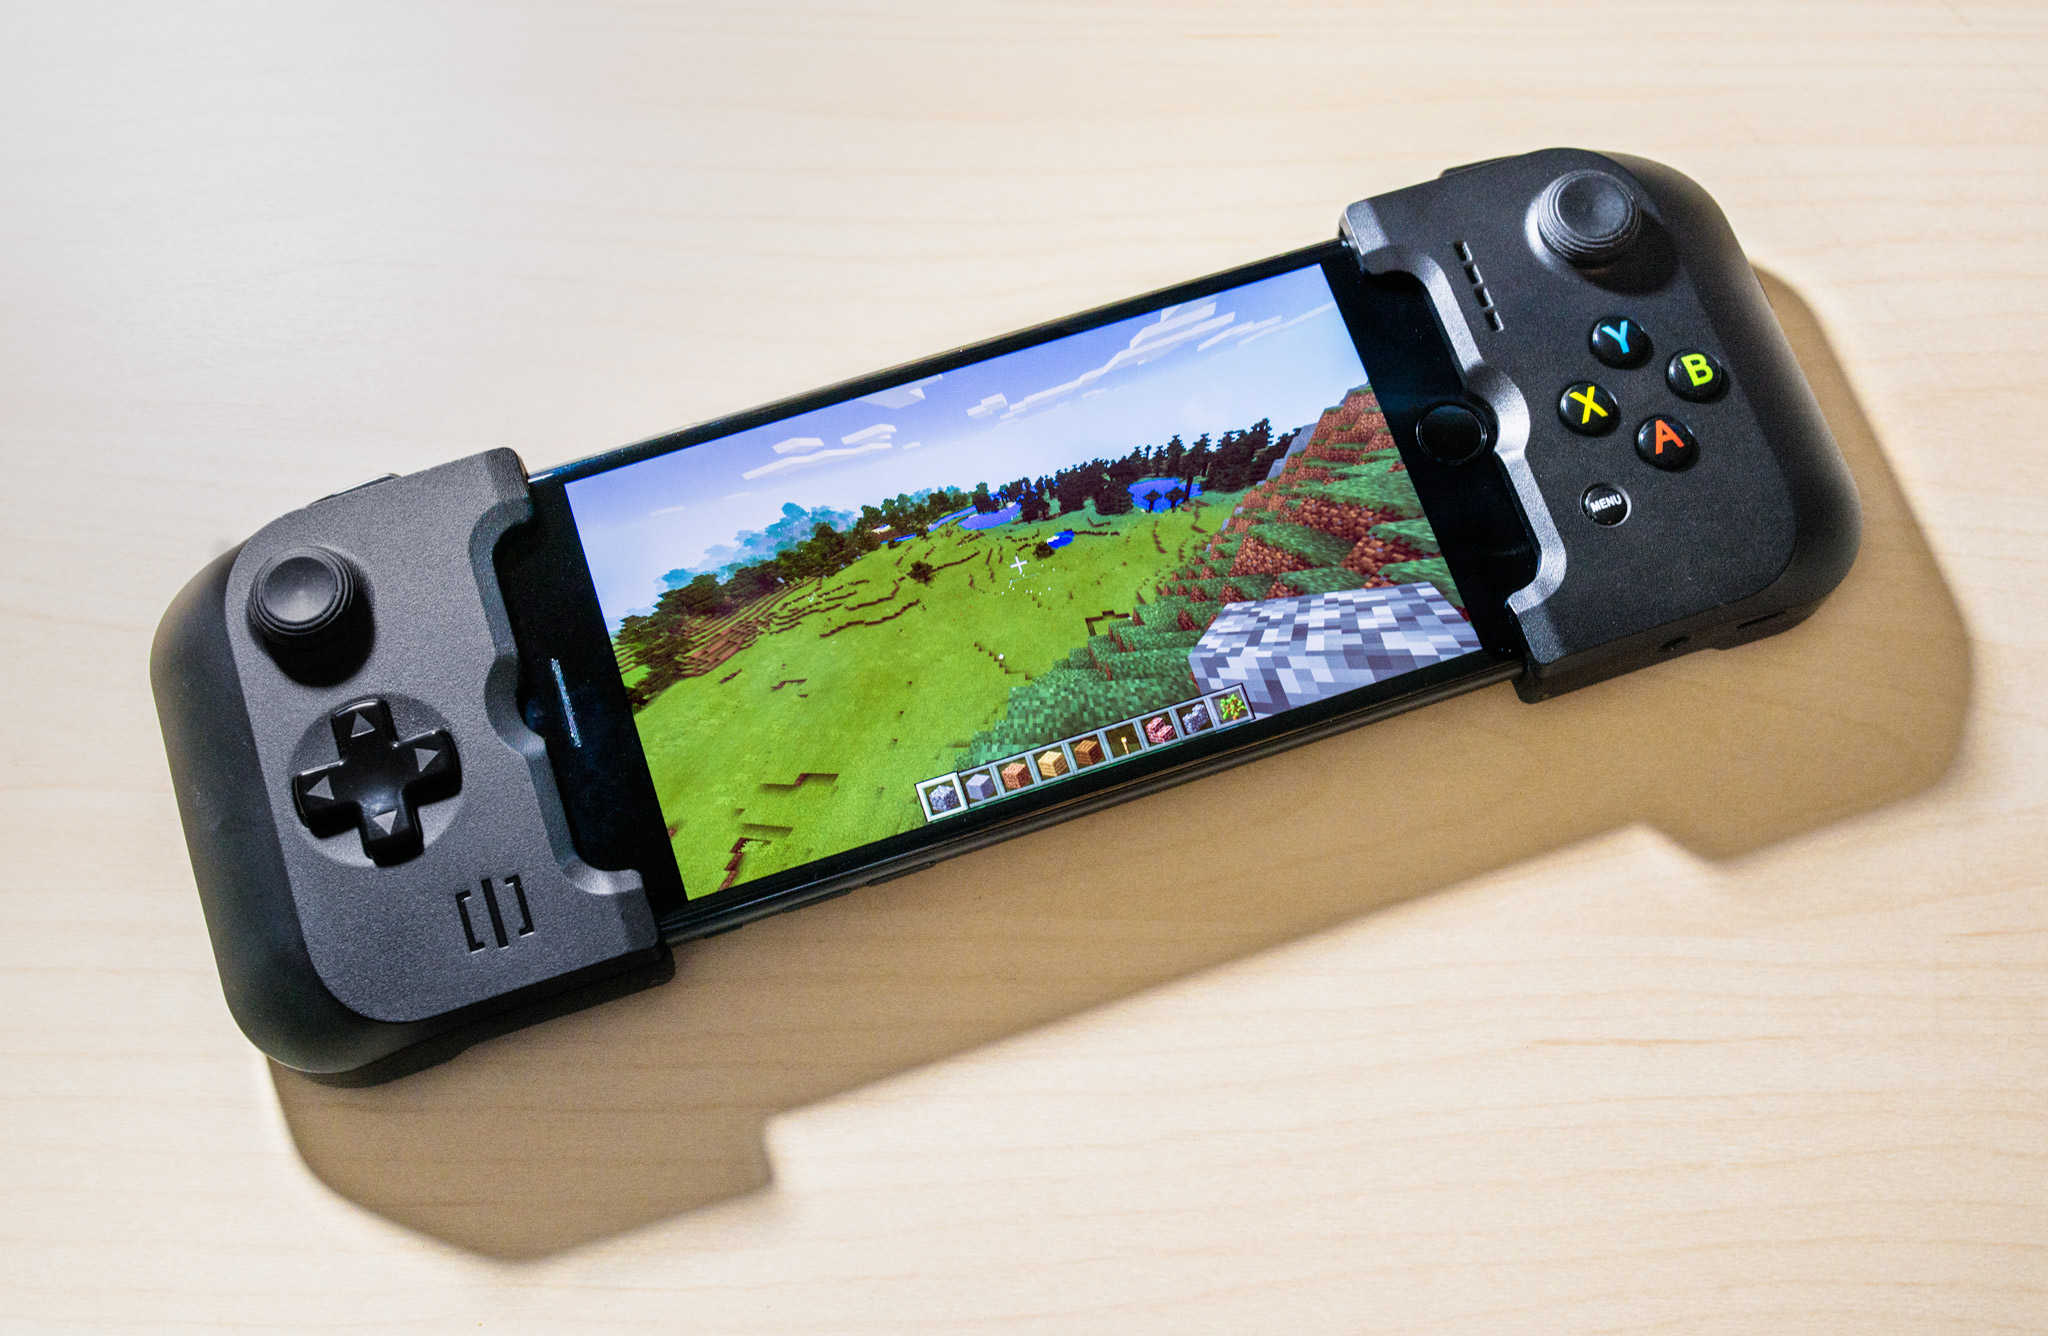 Top 5 gamepads for iOS devices to become the best player in Fortnite